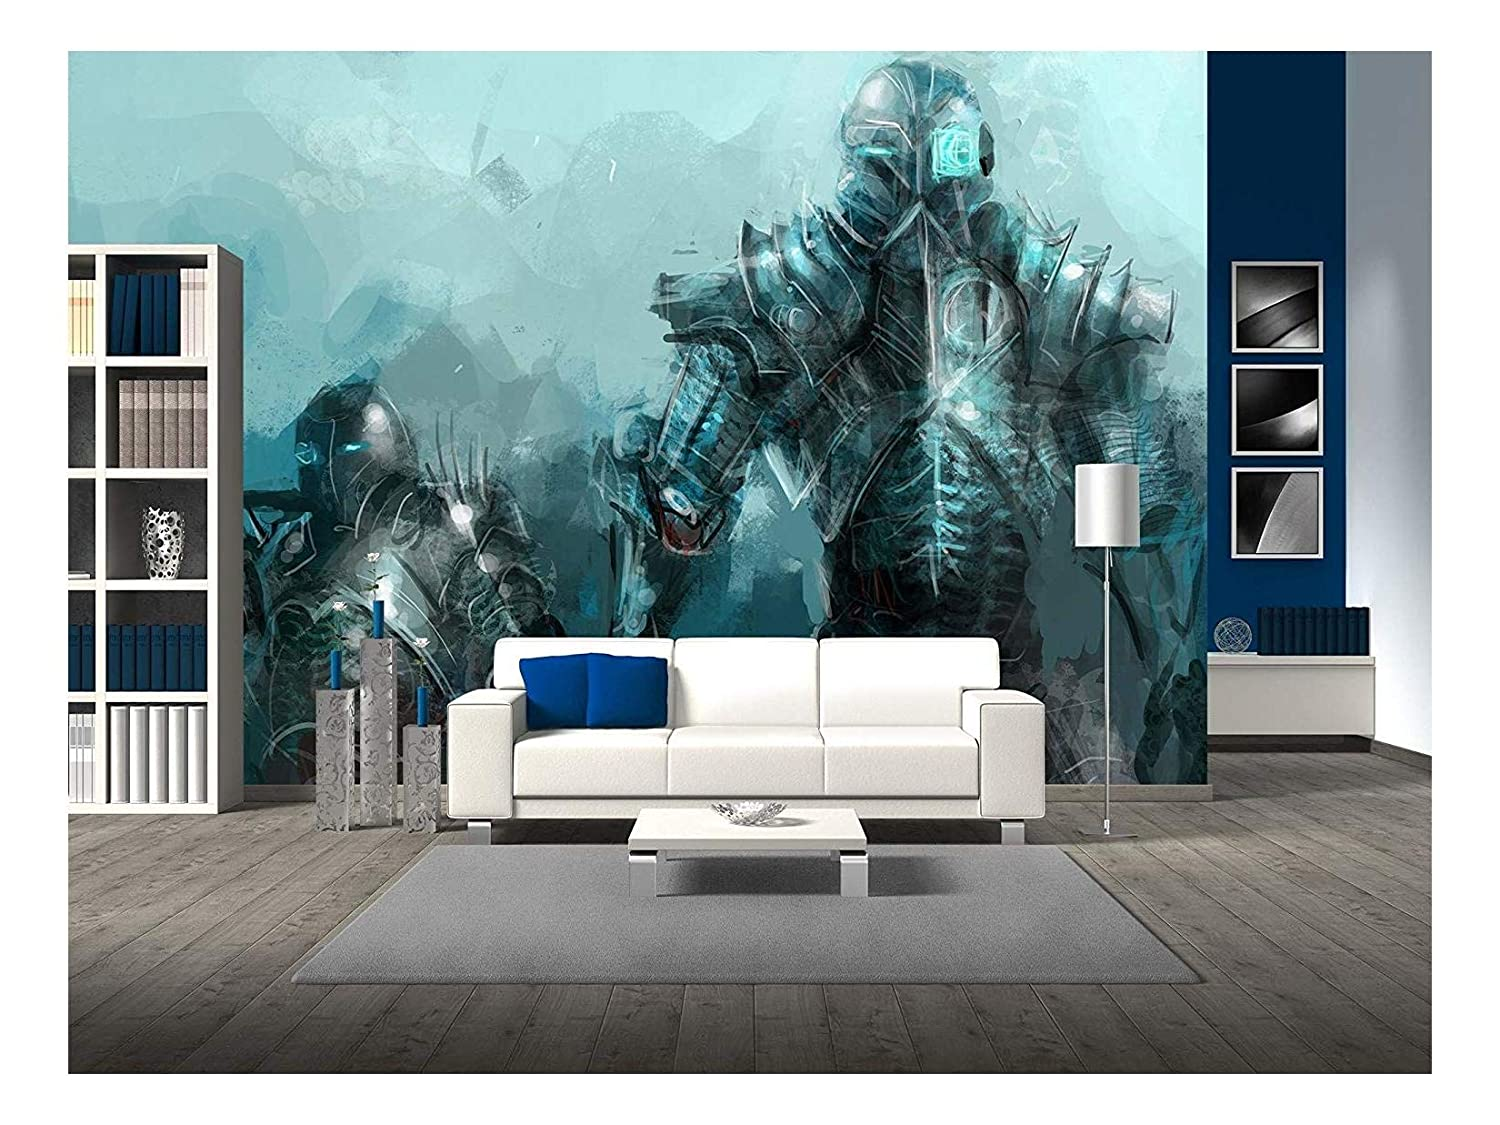 wall26 - cybernetics Army, Concept Art Soldiers - Removable Wall Mural | Self-Adhesive Large Wallpaper - 100x144 inches